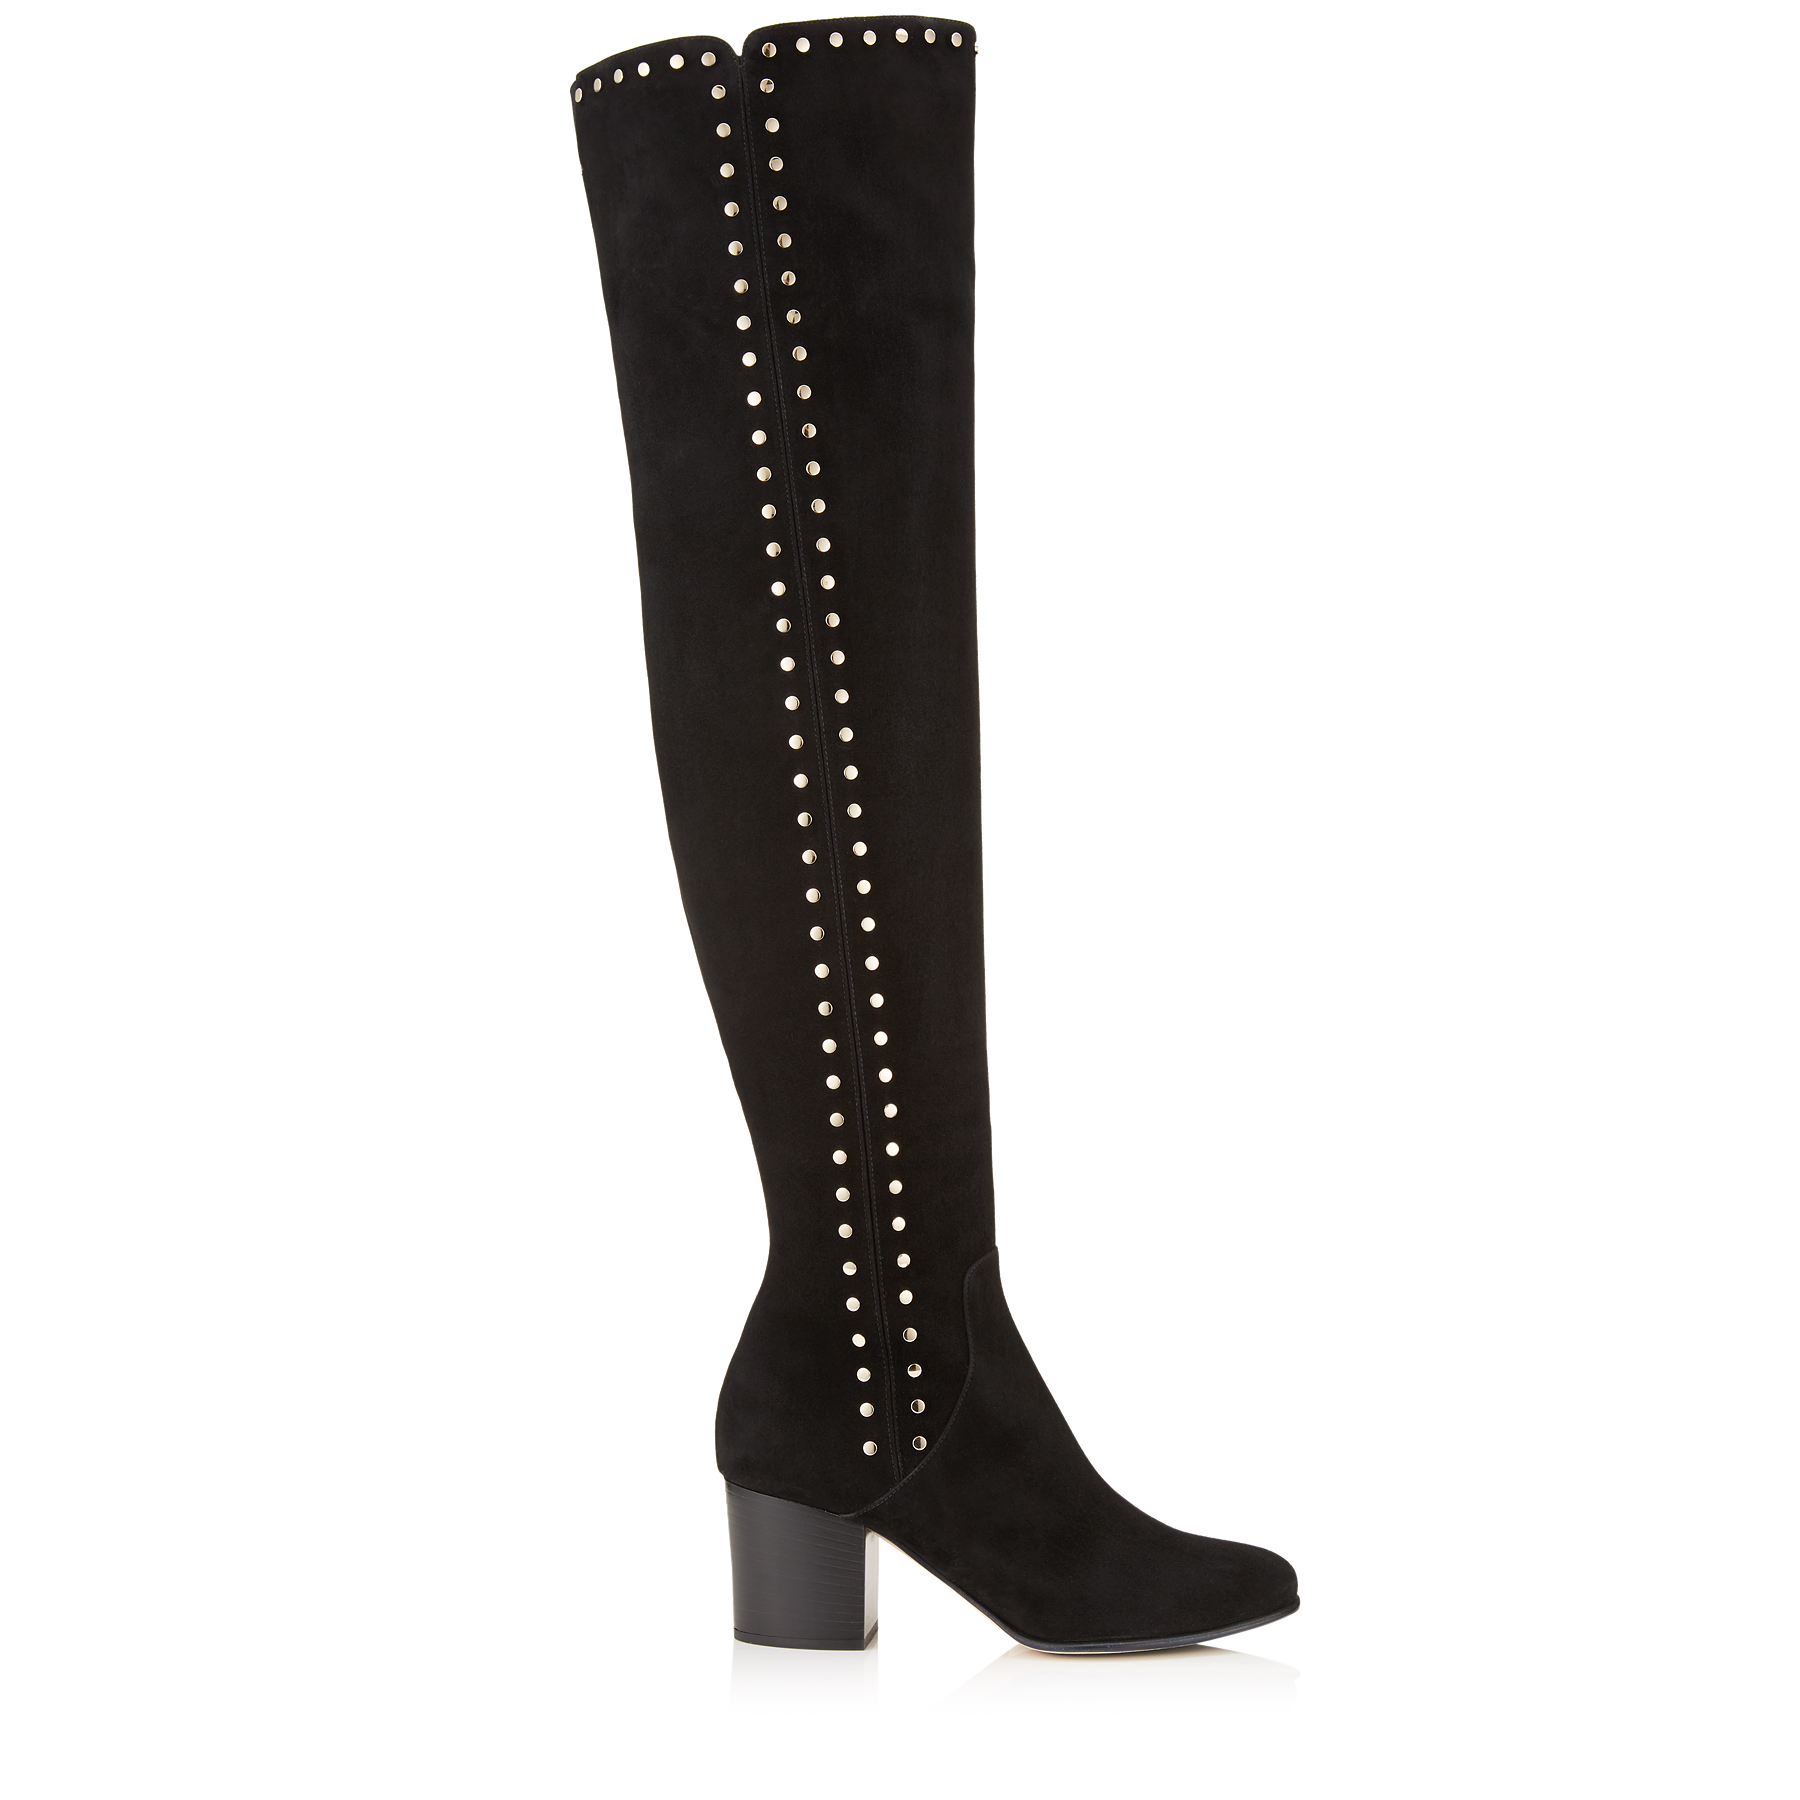 HARLEM 65 Black Suede Over The Knee Boots with Studded Trim by Jimmy Choo